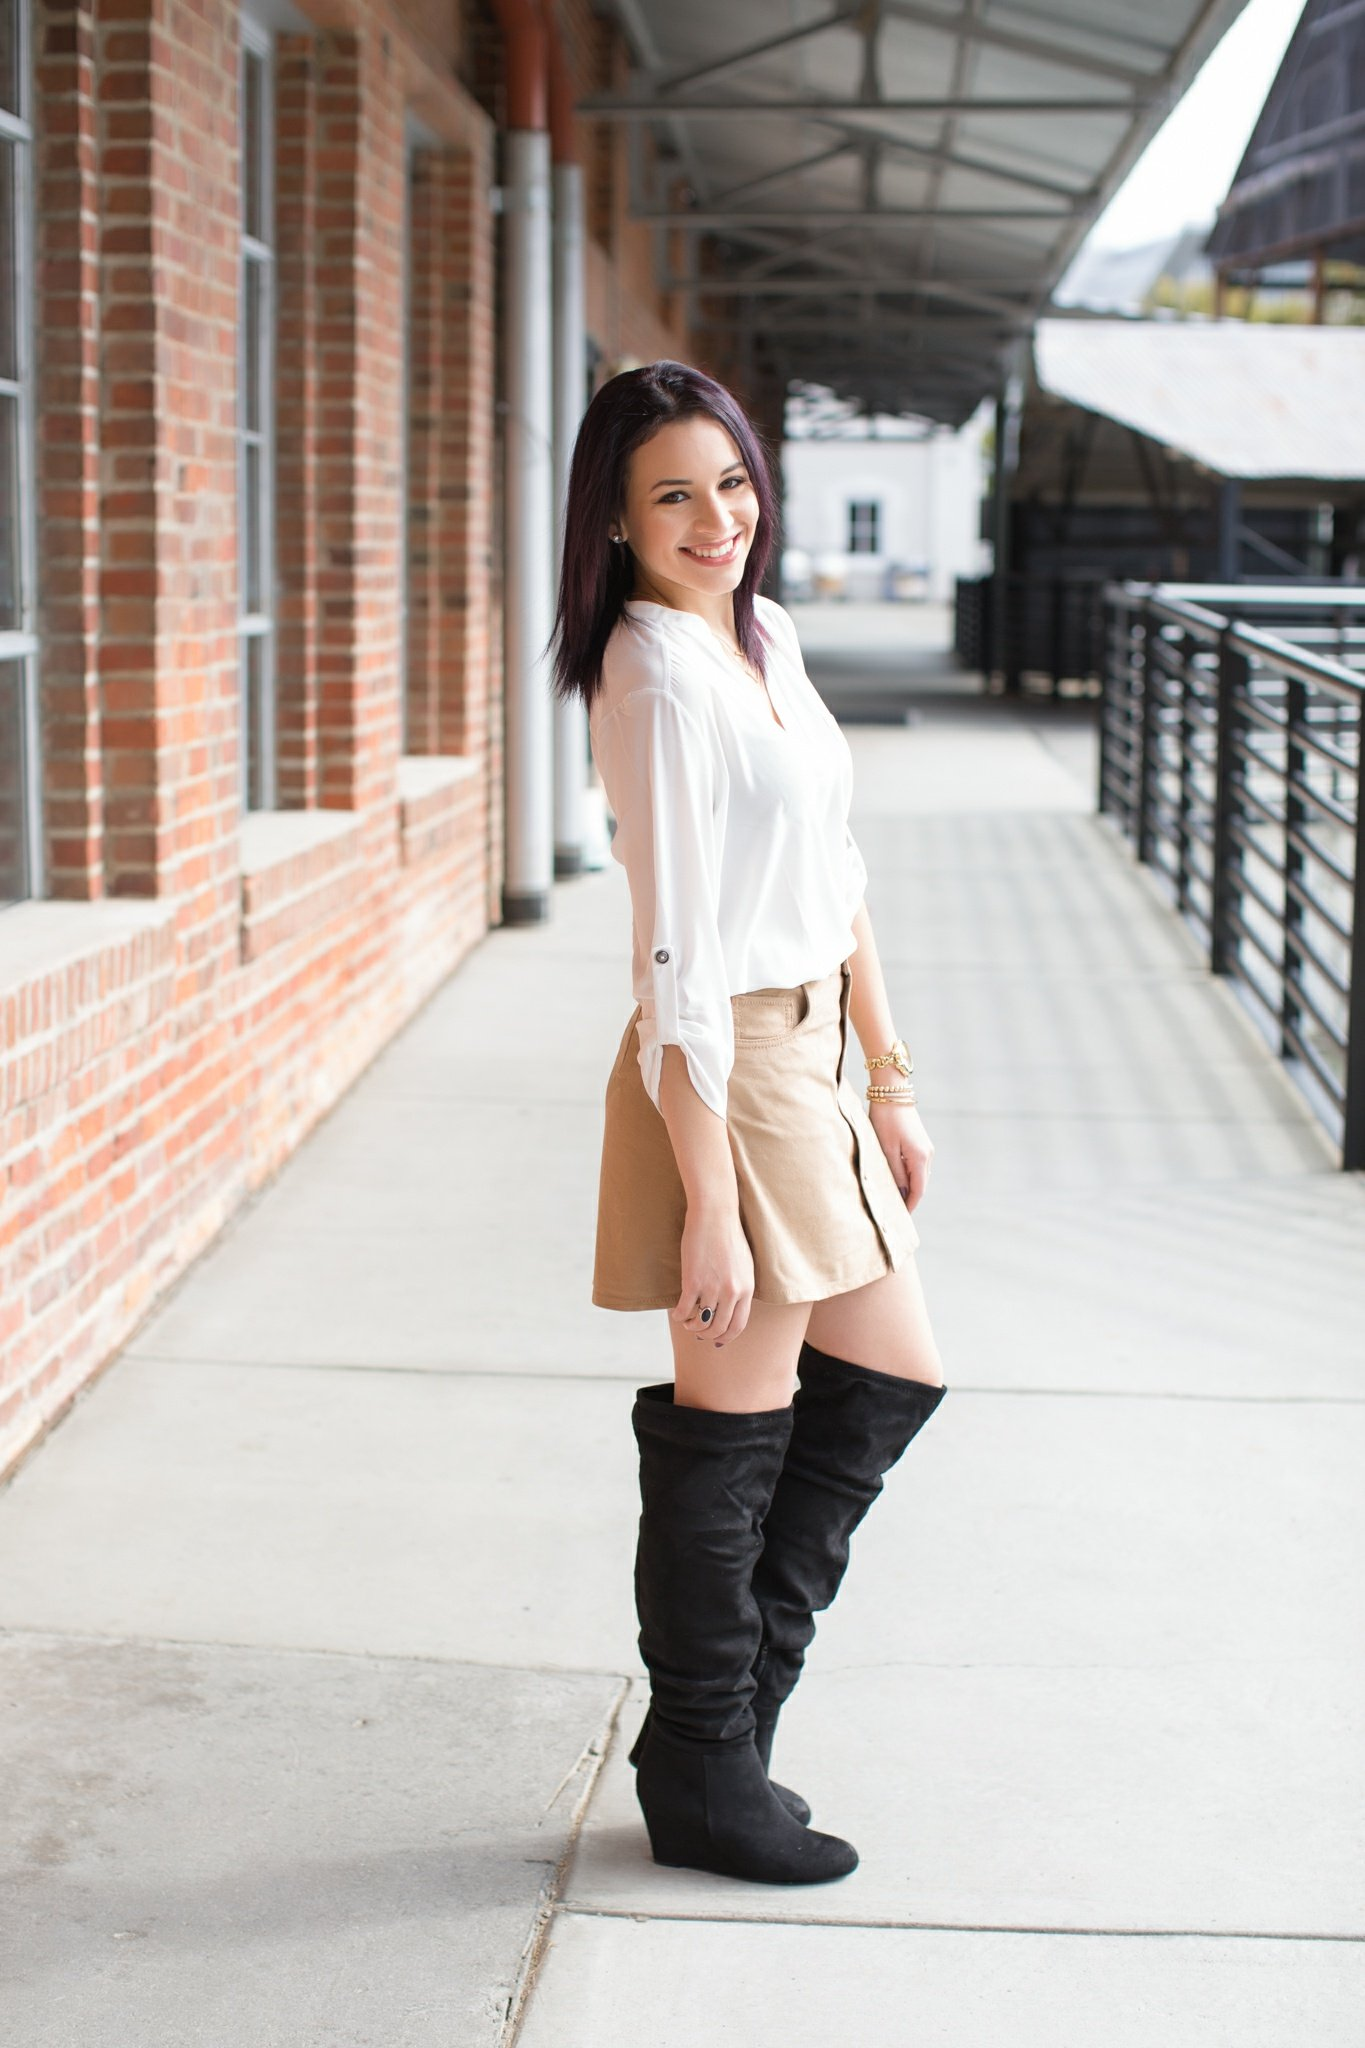 suede skirt and the knee boots